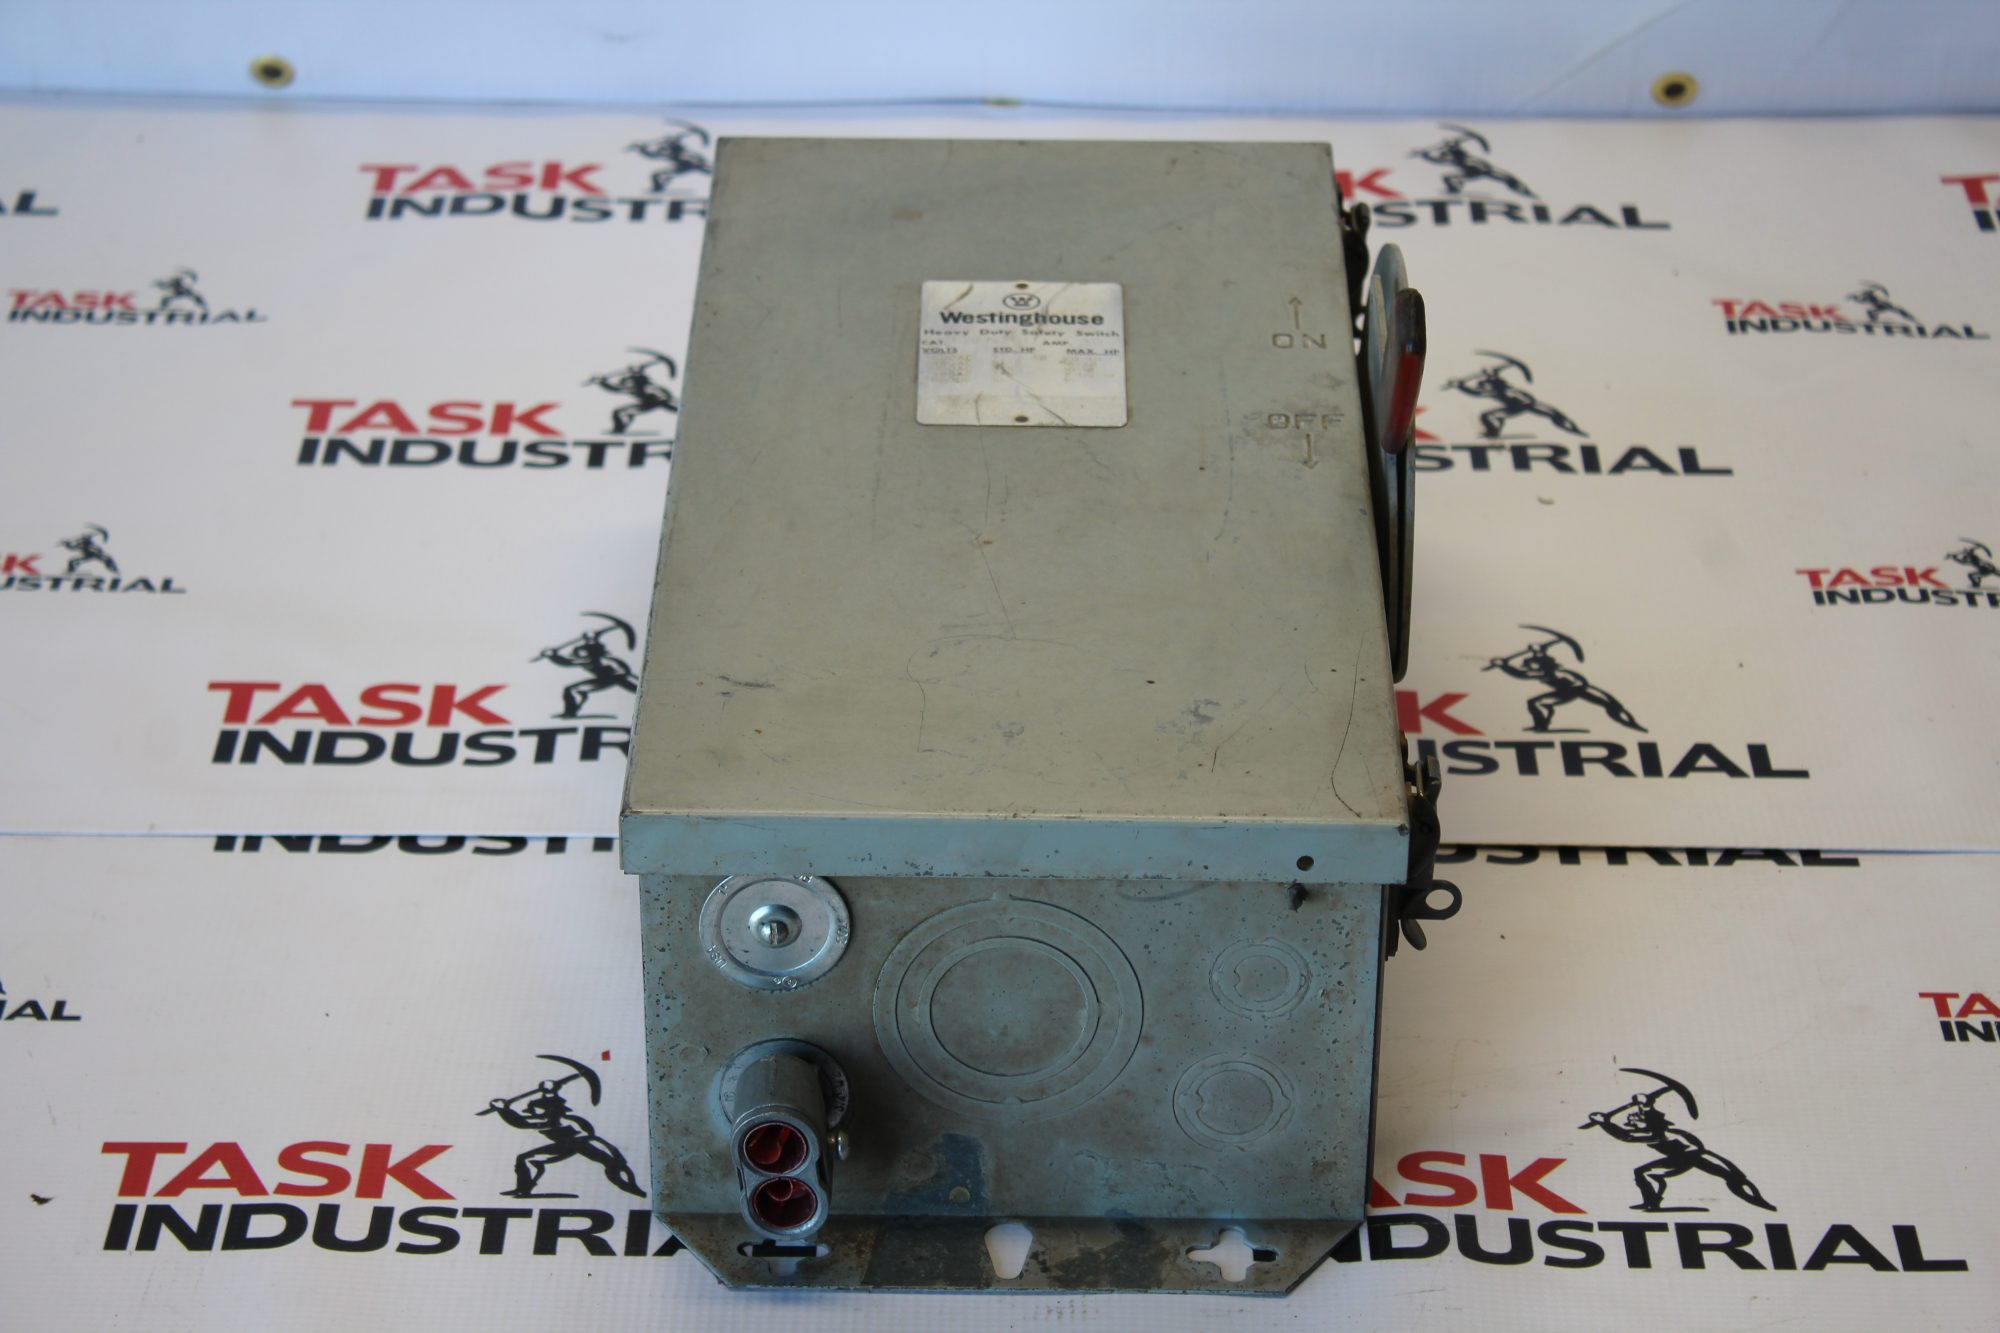 Westinghouse Heavy Duty Safety Switch CAT NO. RHFN361 30Amp